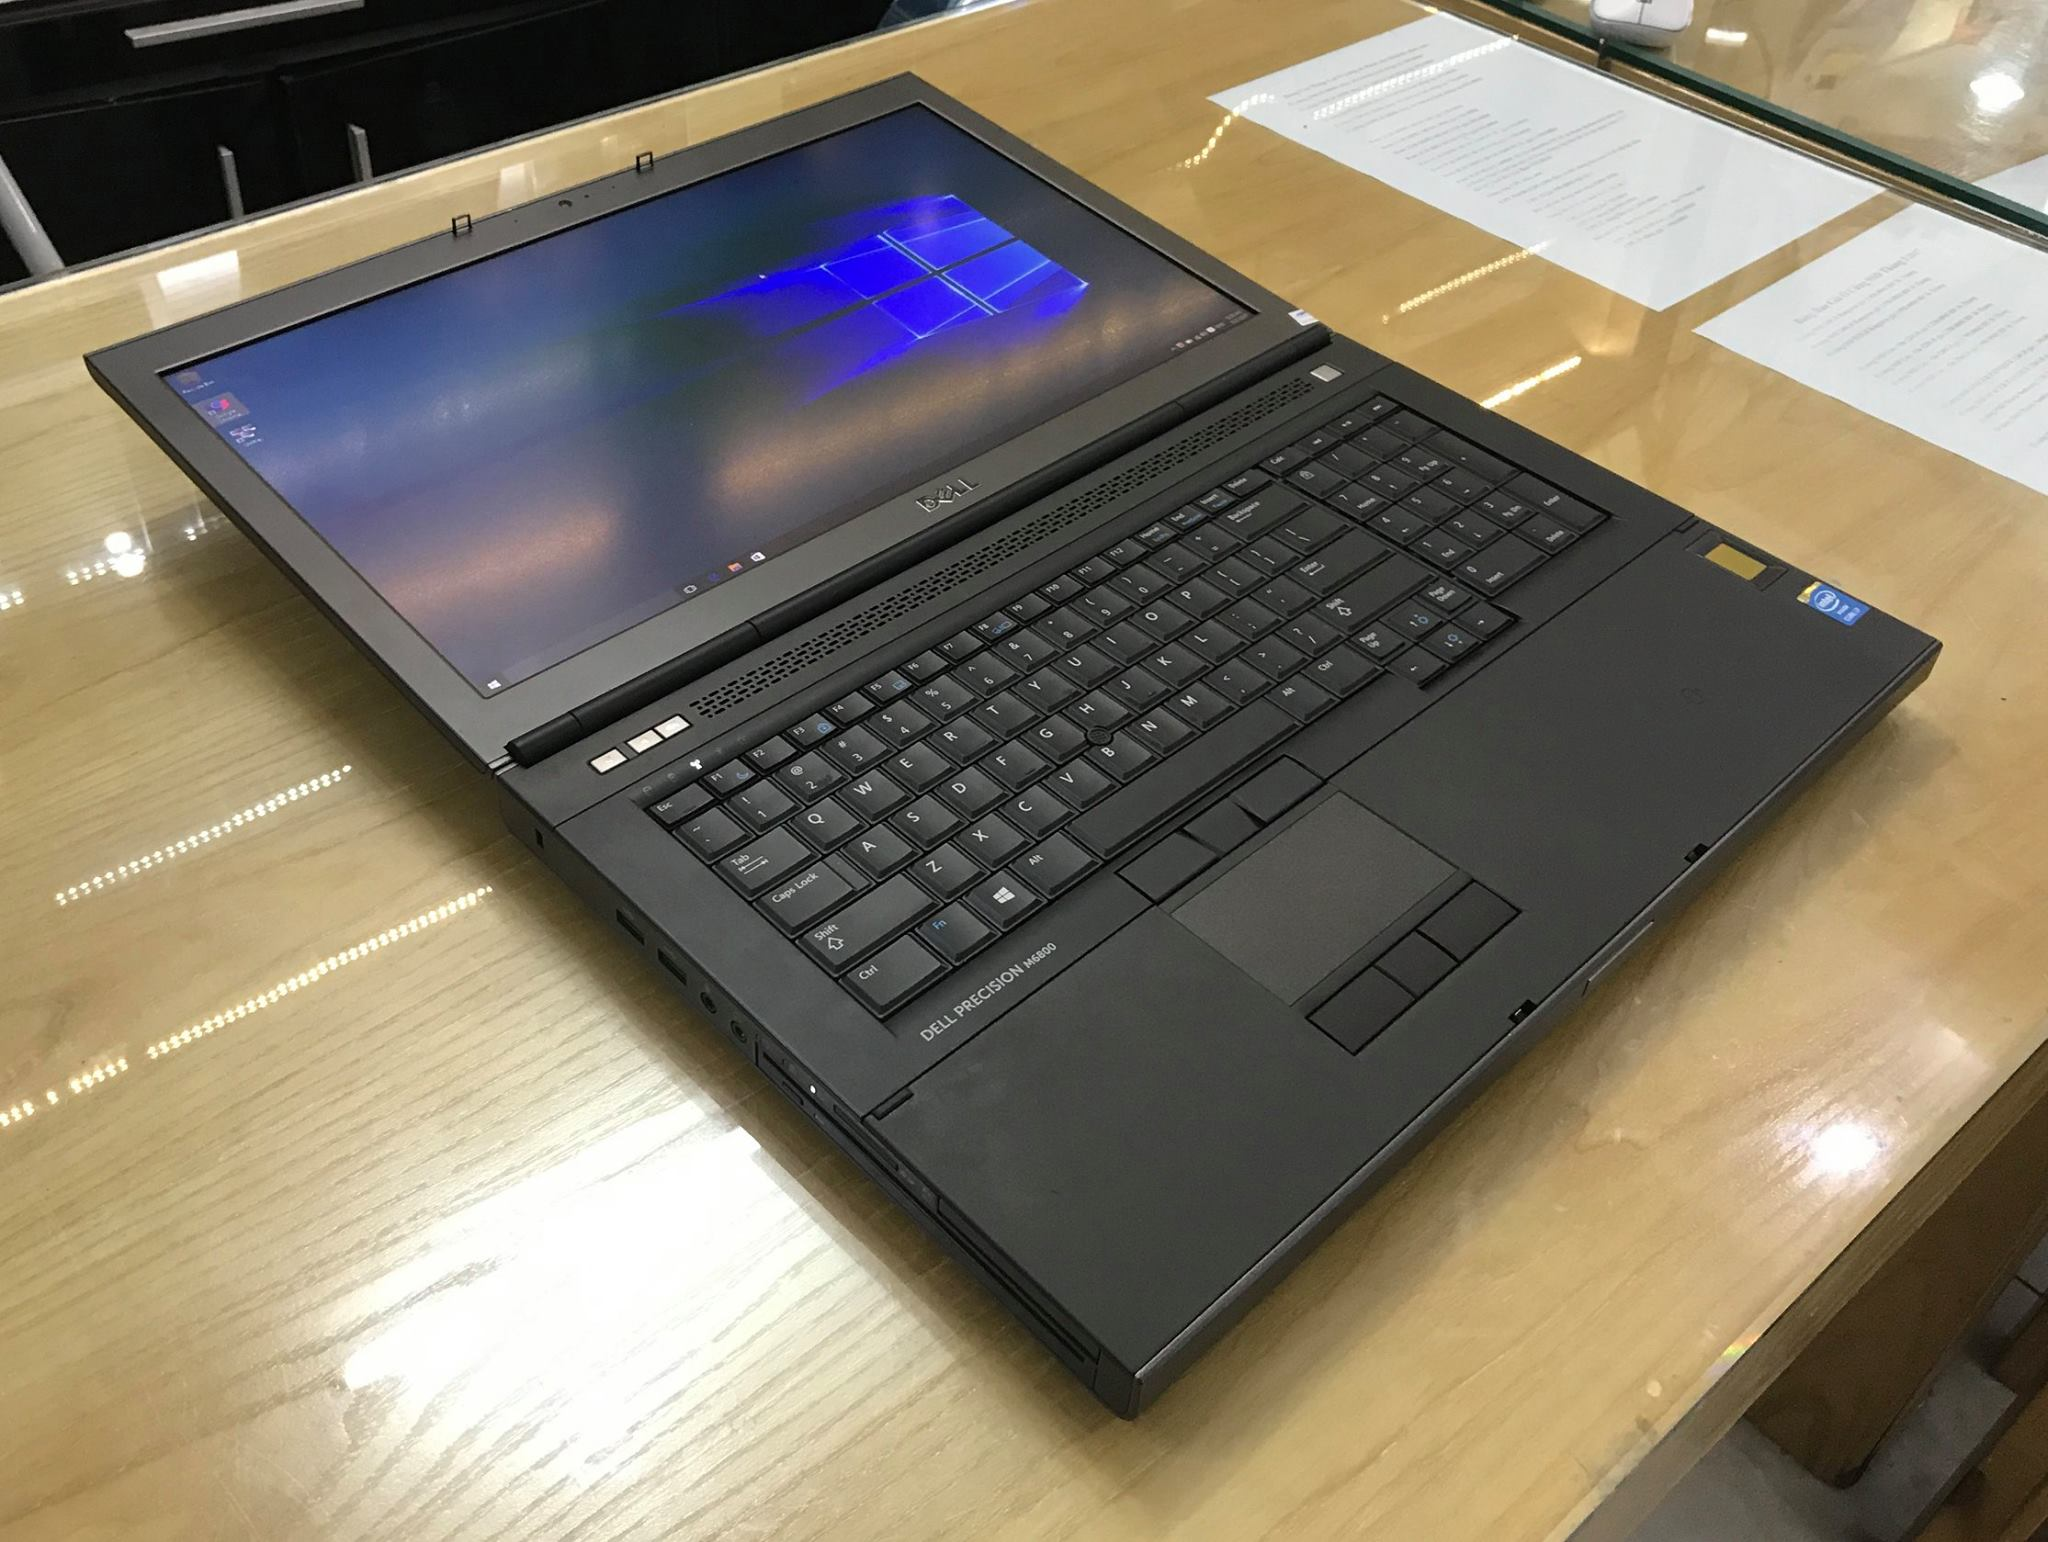 List hàng Laptop cao cấp Macbook-SONY-DELL-HP-ASUS-LENOVO-ACER-SAMSUNG ship từ USA - 11